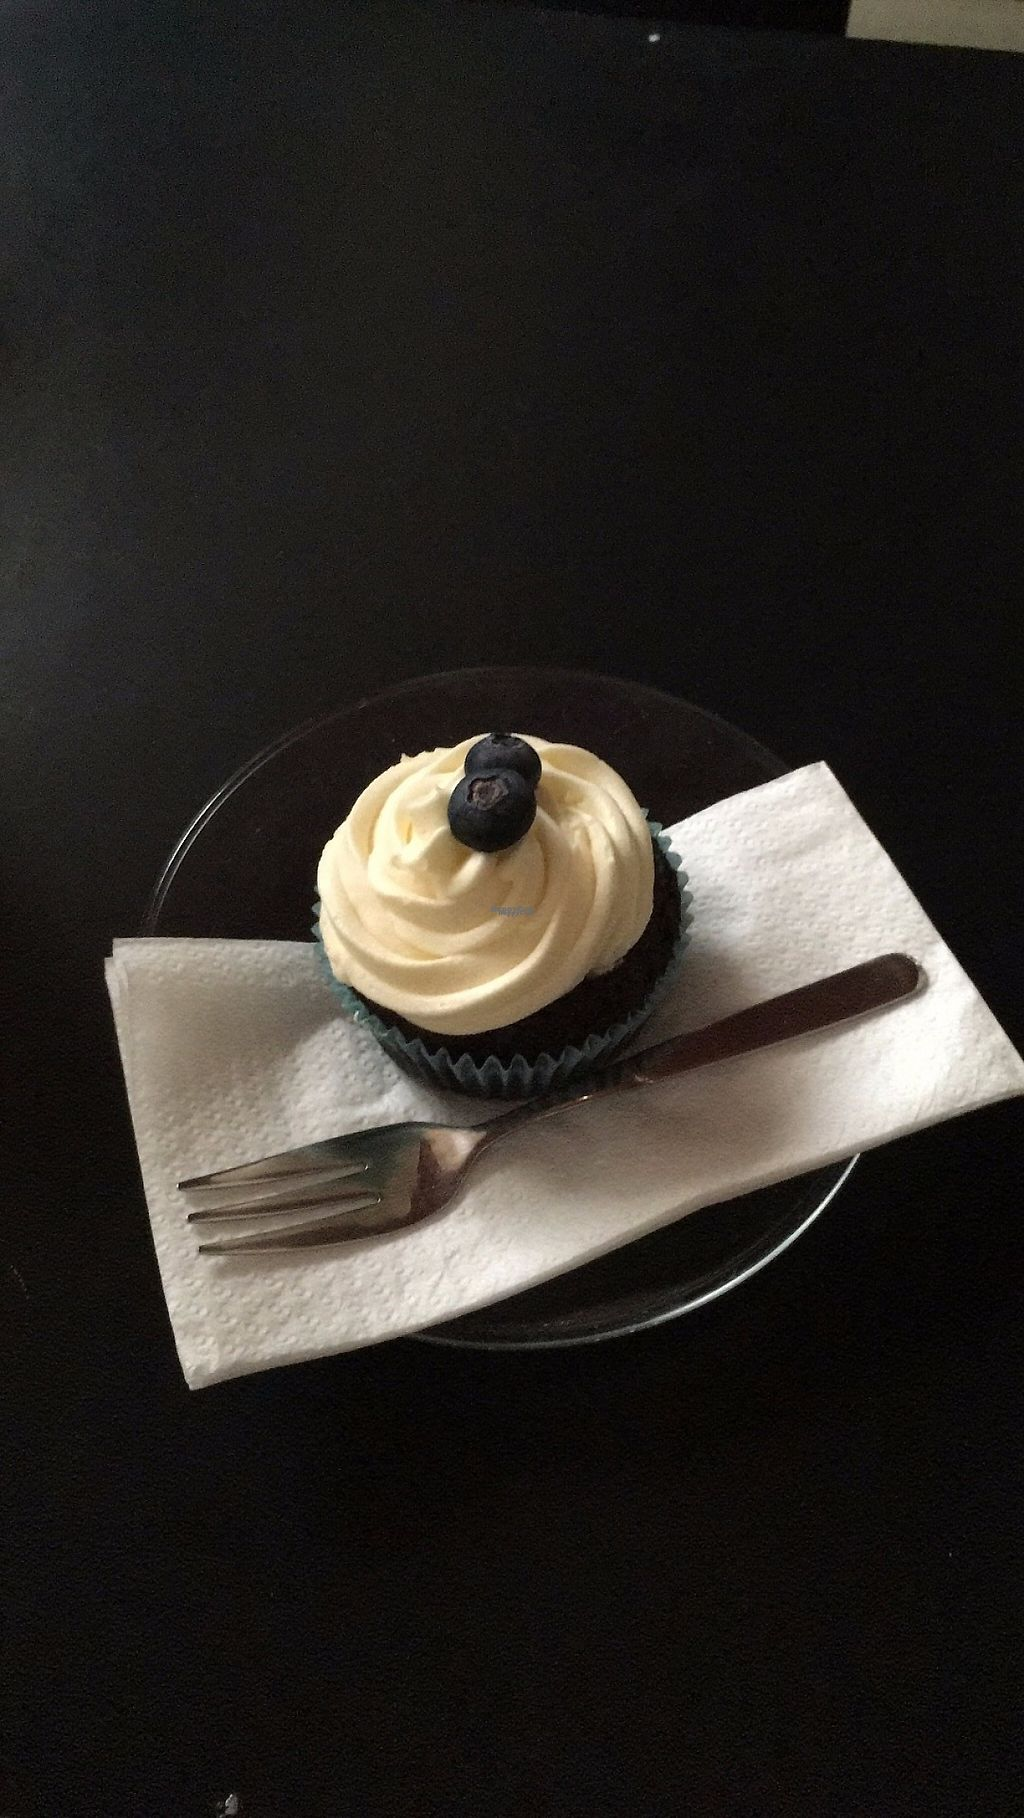 """Photo of Cafe Riptide  by <a href=""""/members/profile/MiaAmWoerthersee"""">MiaAmWoerthersee</a> <br/>Vegan cupcake <br/> April 30, 2017  - <a href='/contact/abuse/image/20667/254198'>Report</a>"""